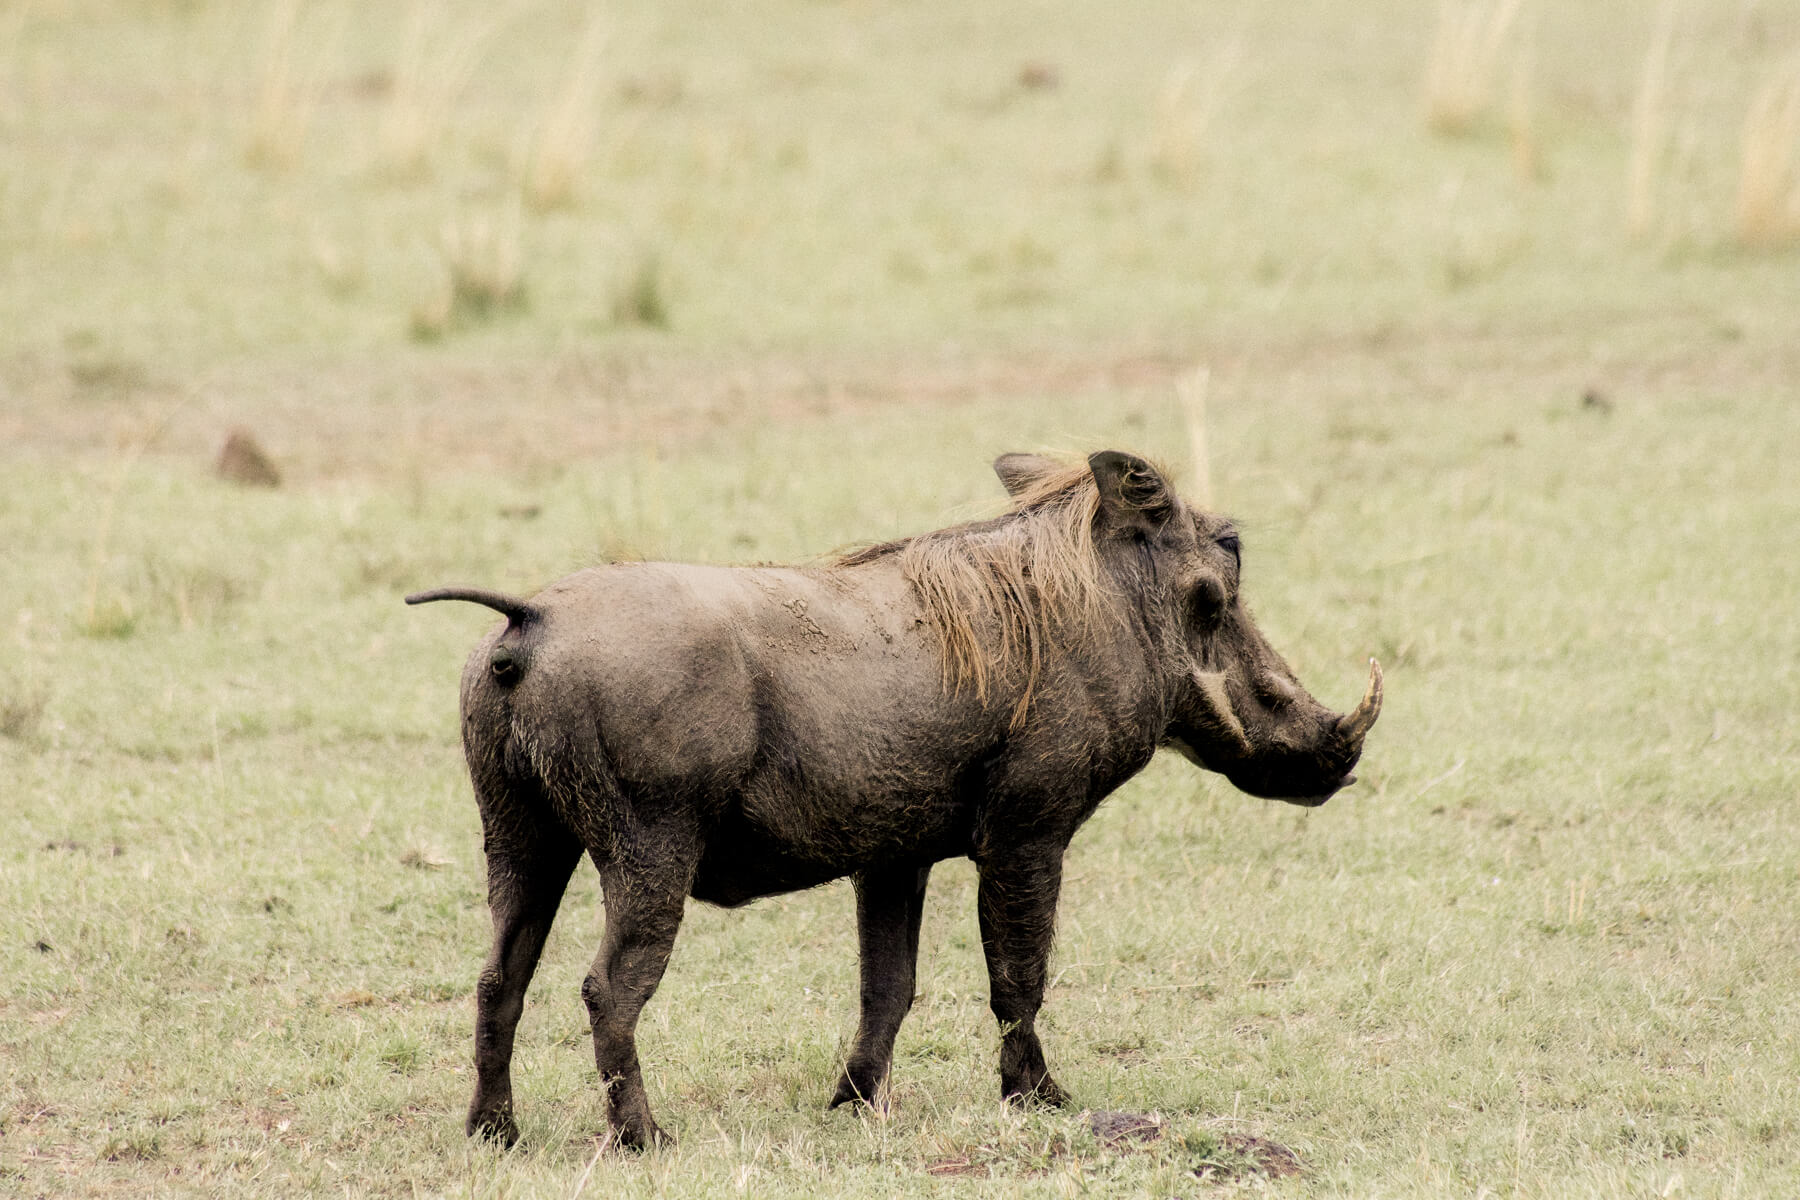 A male warthog facing away from the camera